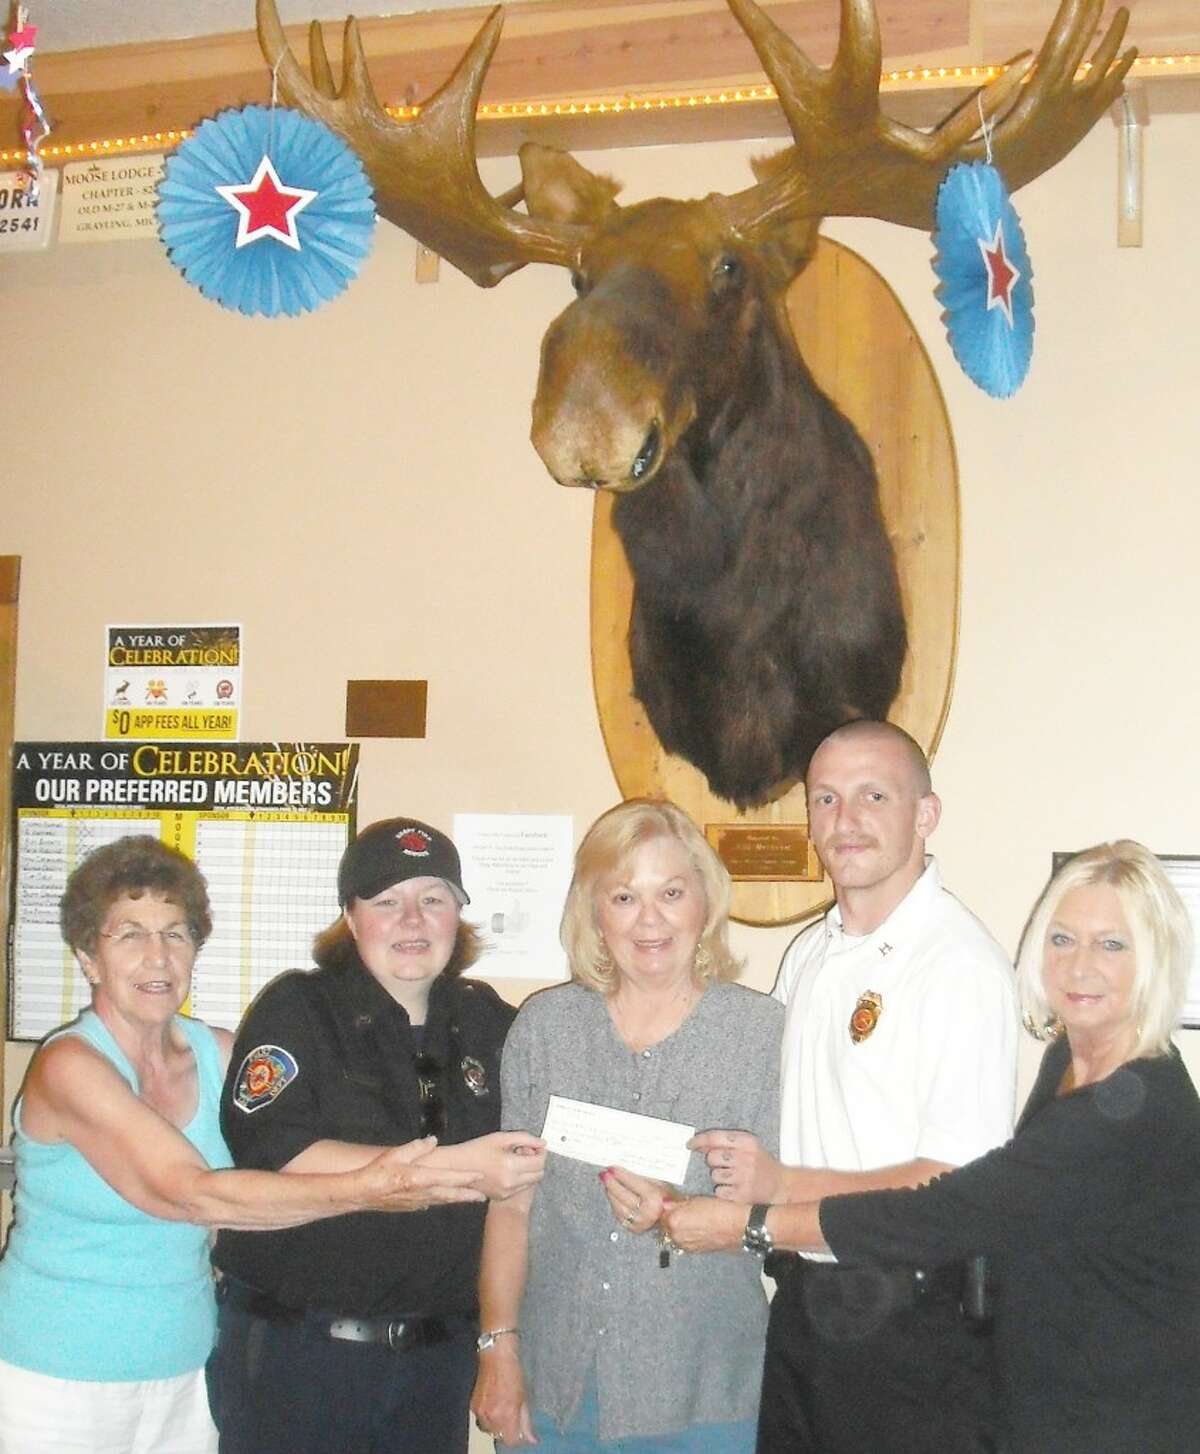 auction: Carol Roberts,chairman of the annual Moose Pie Auction; Tonya Swinehart, an EMT and the lead female Explorer advisor;Sandy Green, senior regent of the Women of the Moose; Jesse Hyden, former FireExplorer and current captain Evart Fire Department andArlene Henry, pie auction contributor, pose with a check donation of $200 given fromMoose Lodge No. 2452.(Courtesy photo)